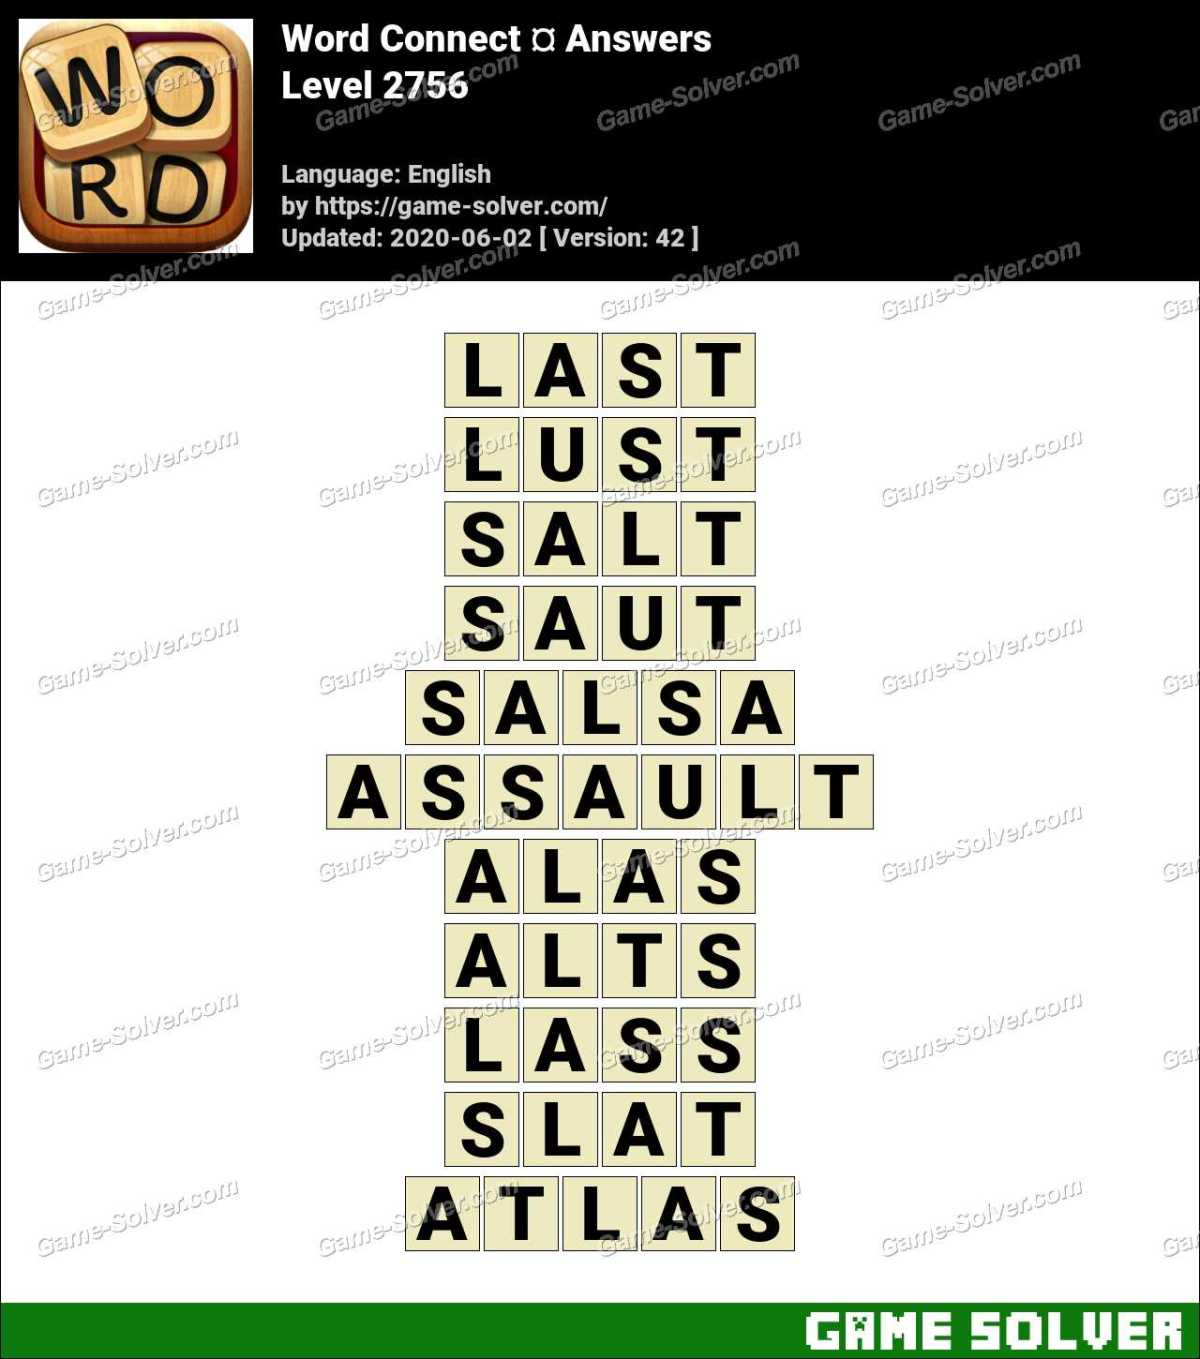 Word Connect Level 2756 Answers